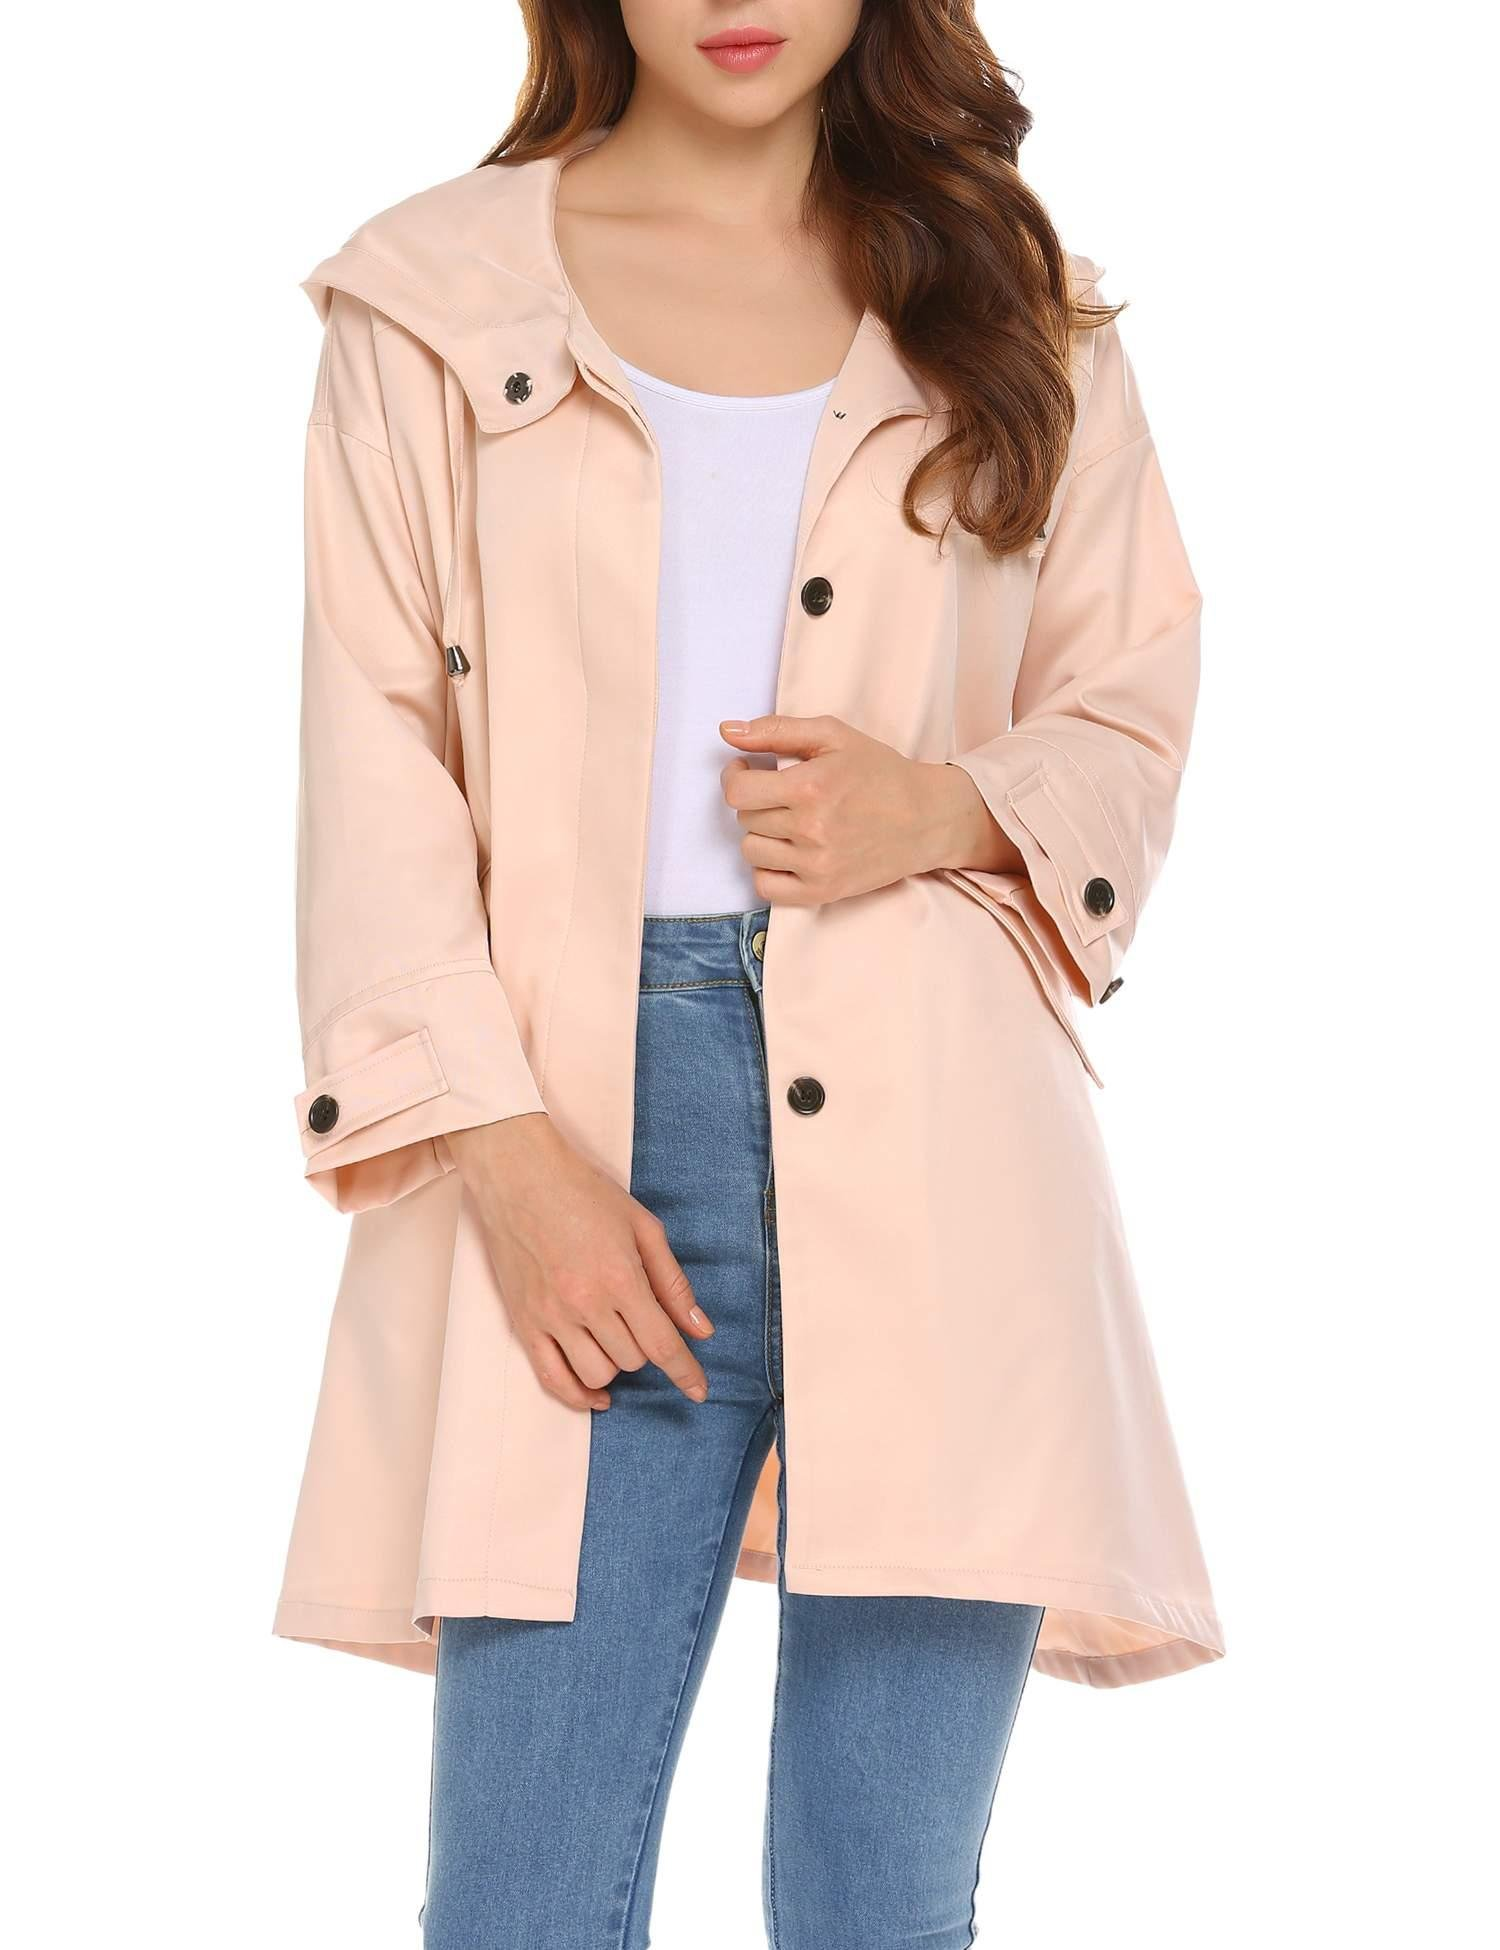 Bulges Women Casual Hooded 3/4 Sleeve Trench Coat Jacket Regular Fit Waist Drawstring Basic Windbreaker Outwear